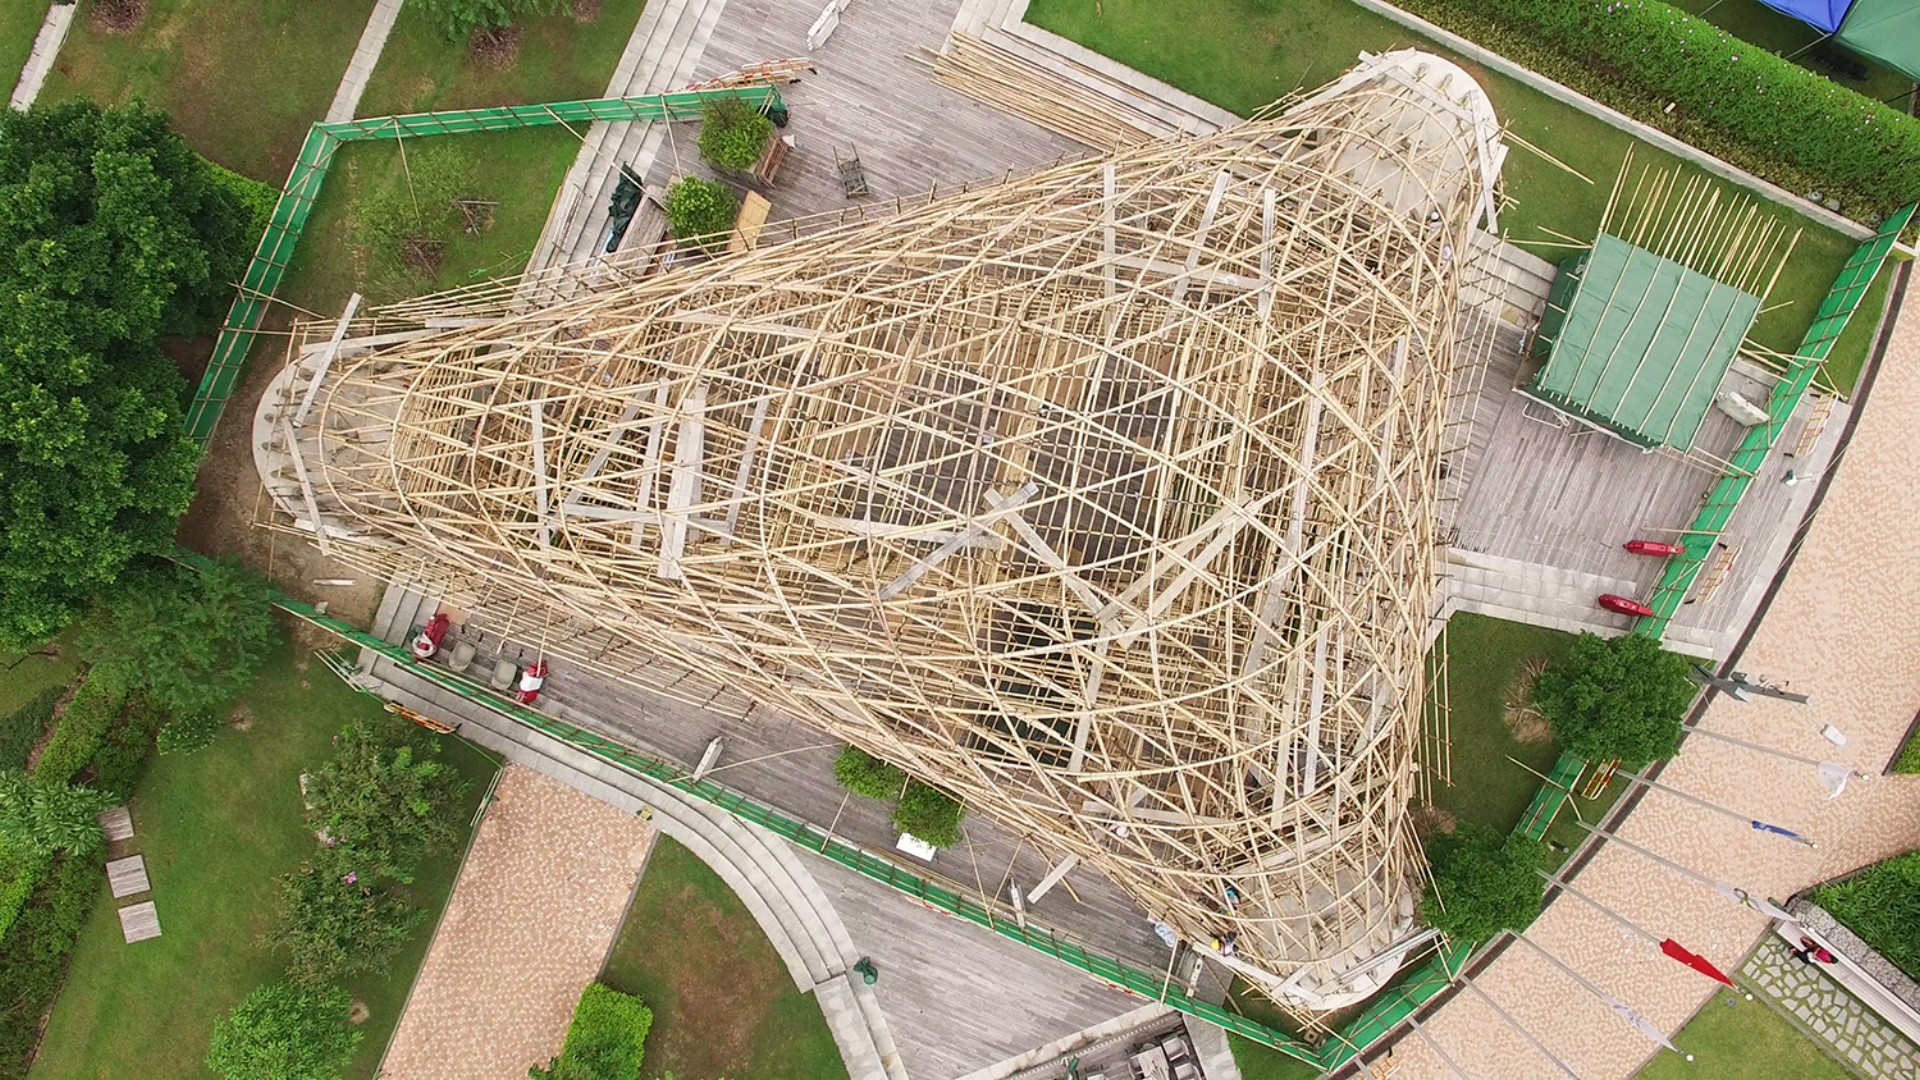 ZCB Bamboo Pavilion The Chinese University of Hong Kong School of Architecture